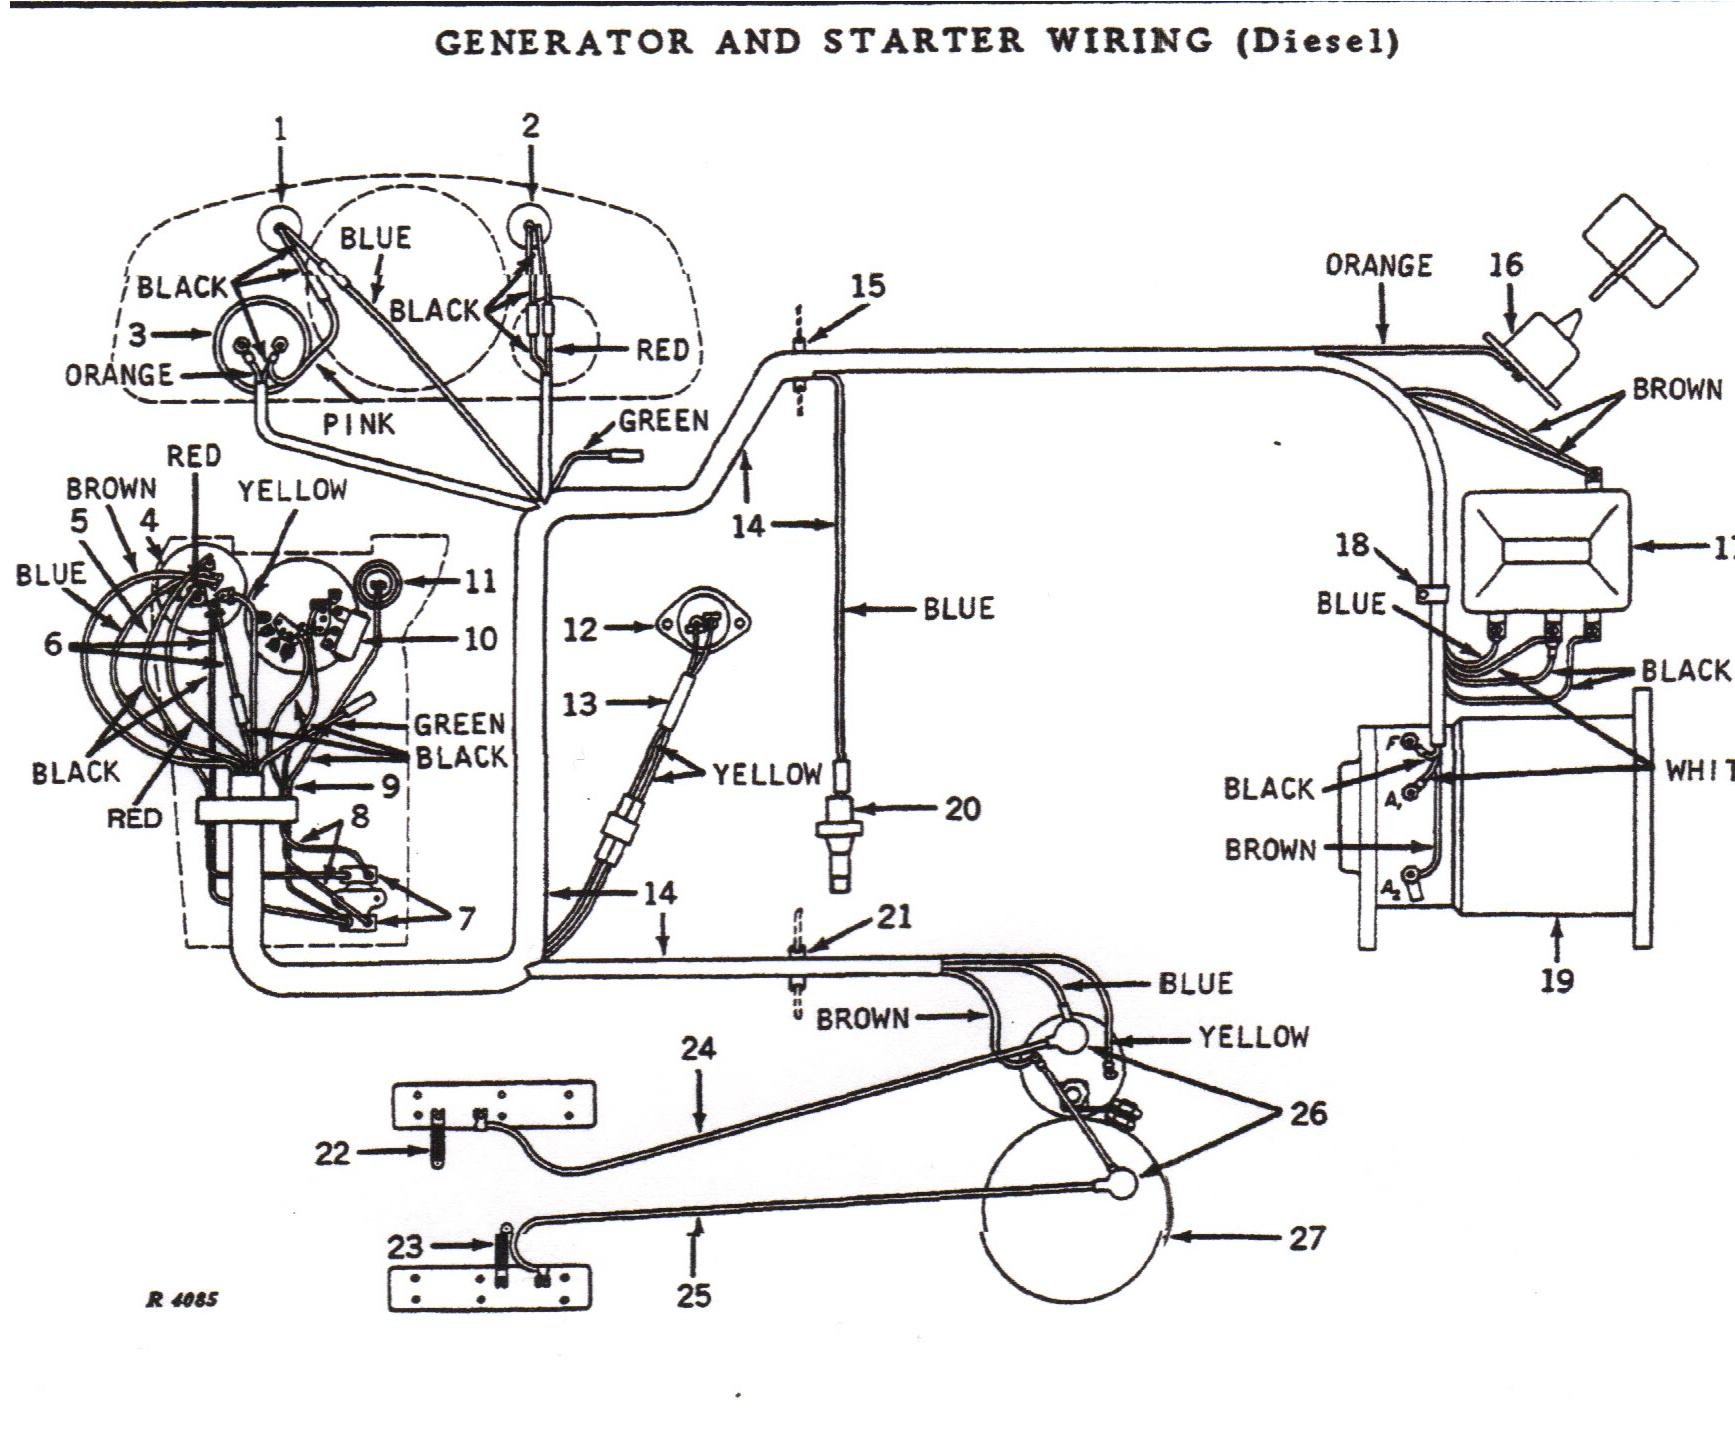 John Deere Diagrams Wiring Diagram Schemes Eureka Vacuum Diagrams John  Deere Diagrams